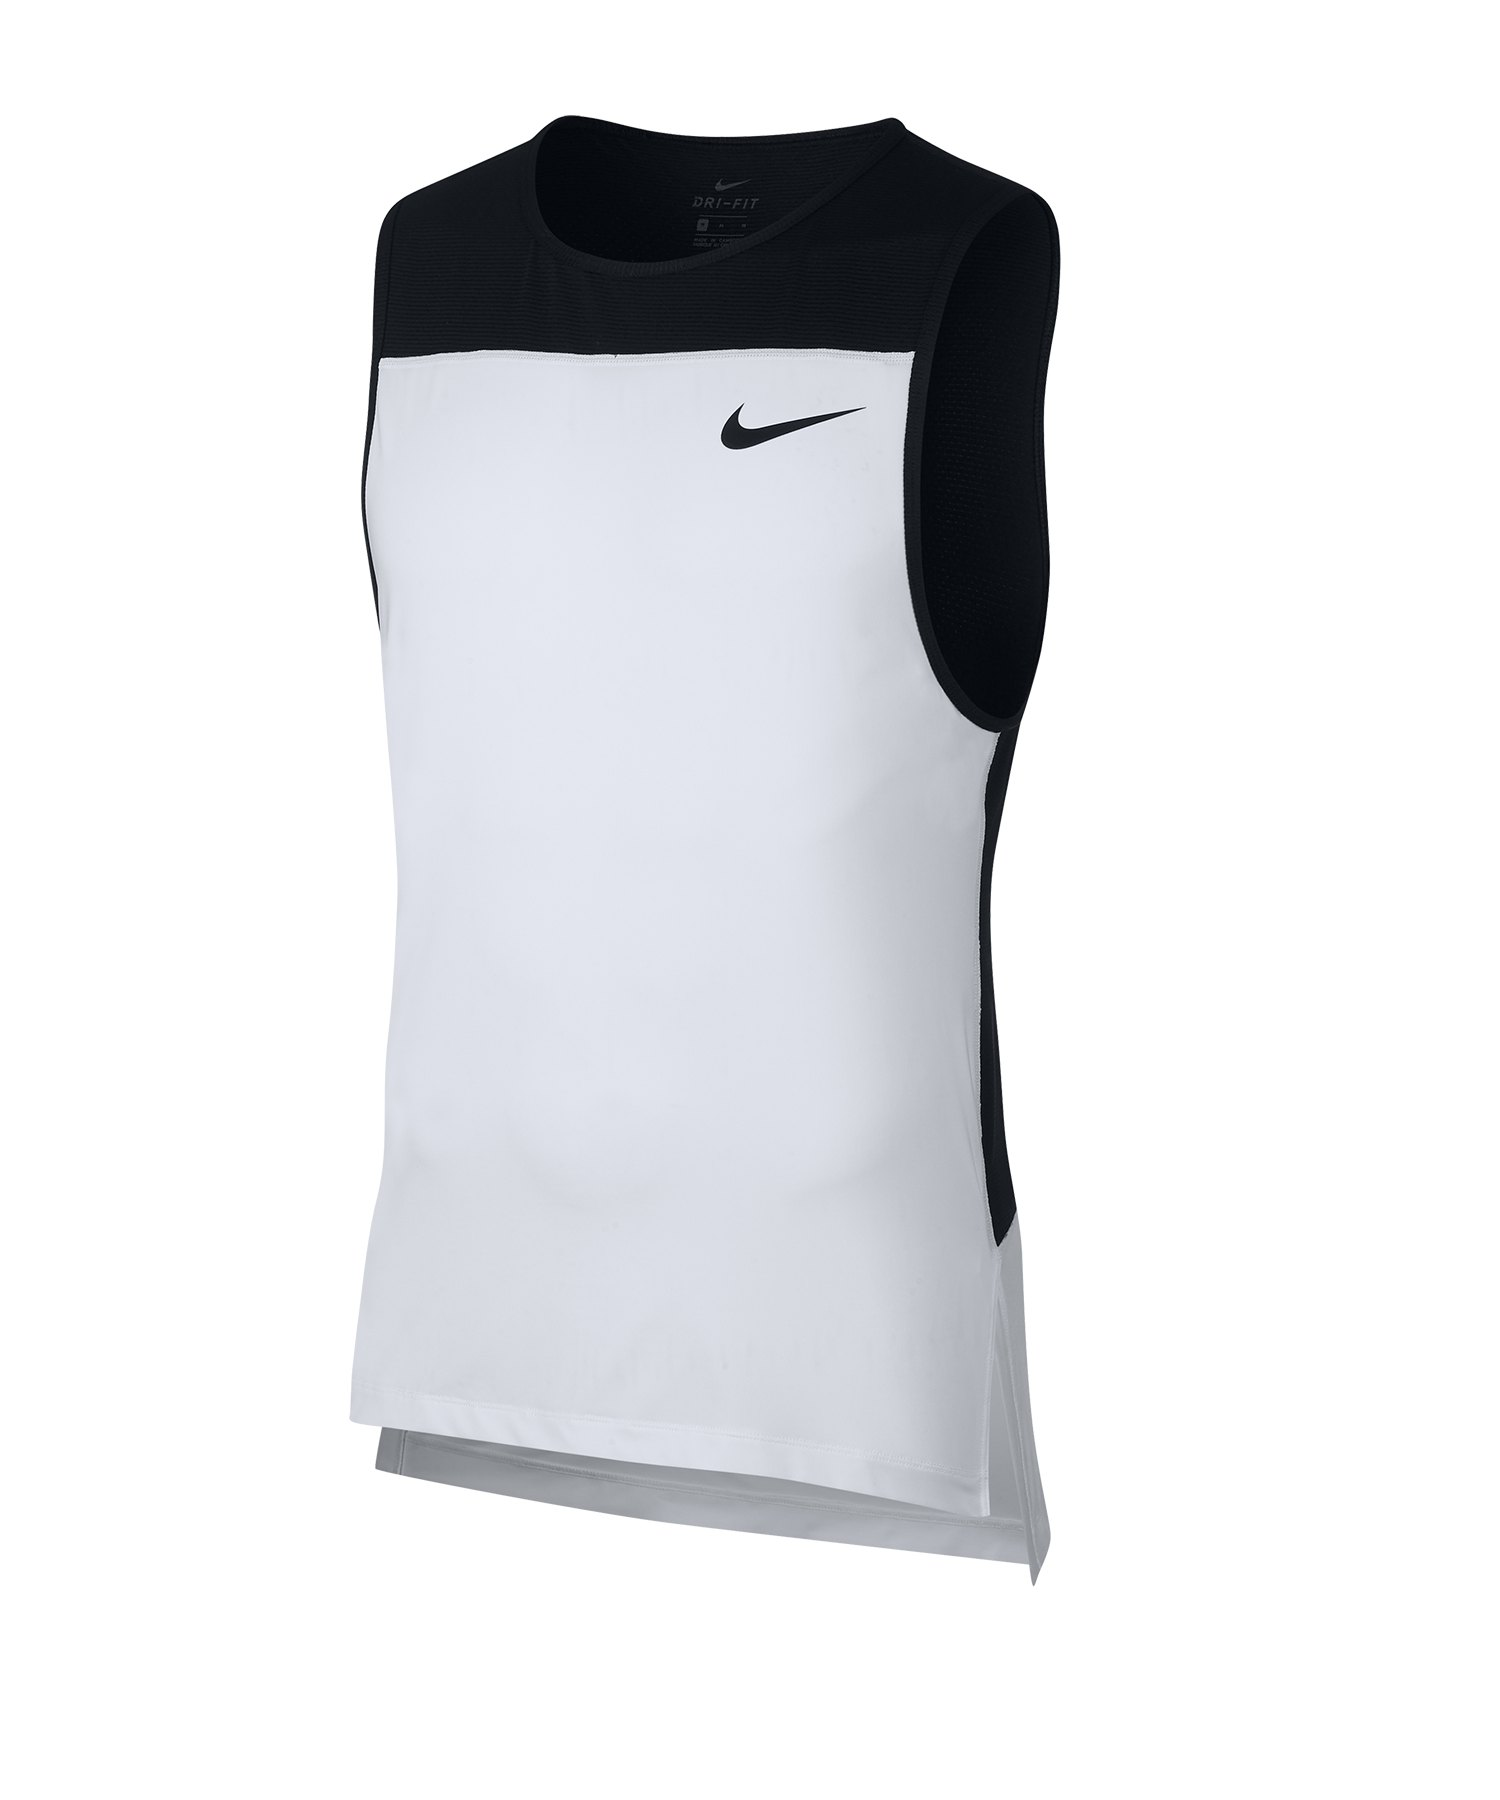 new products 1c5c9 60819 Nike Pro Tank Top Running Weiss Schwarz F100